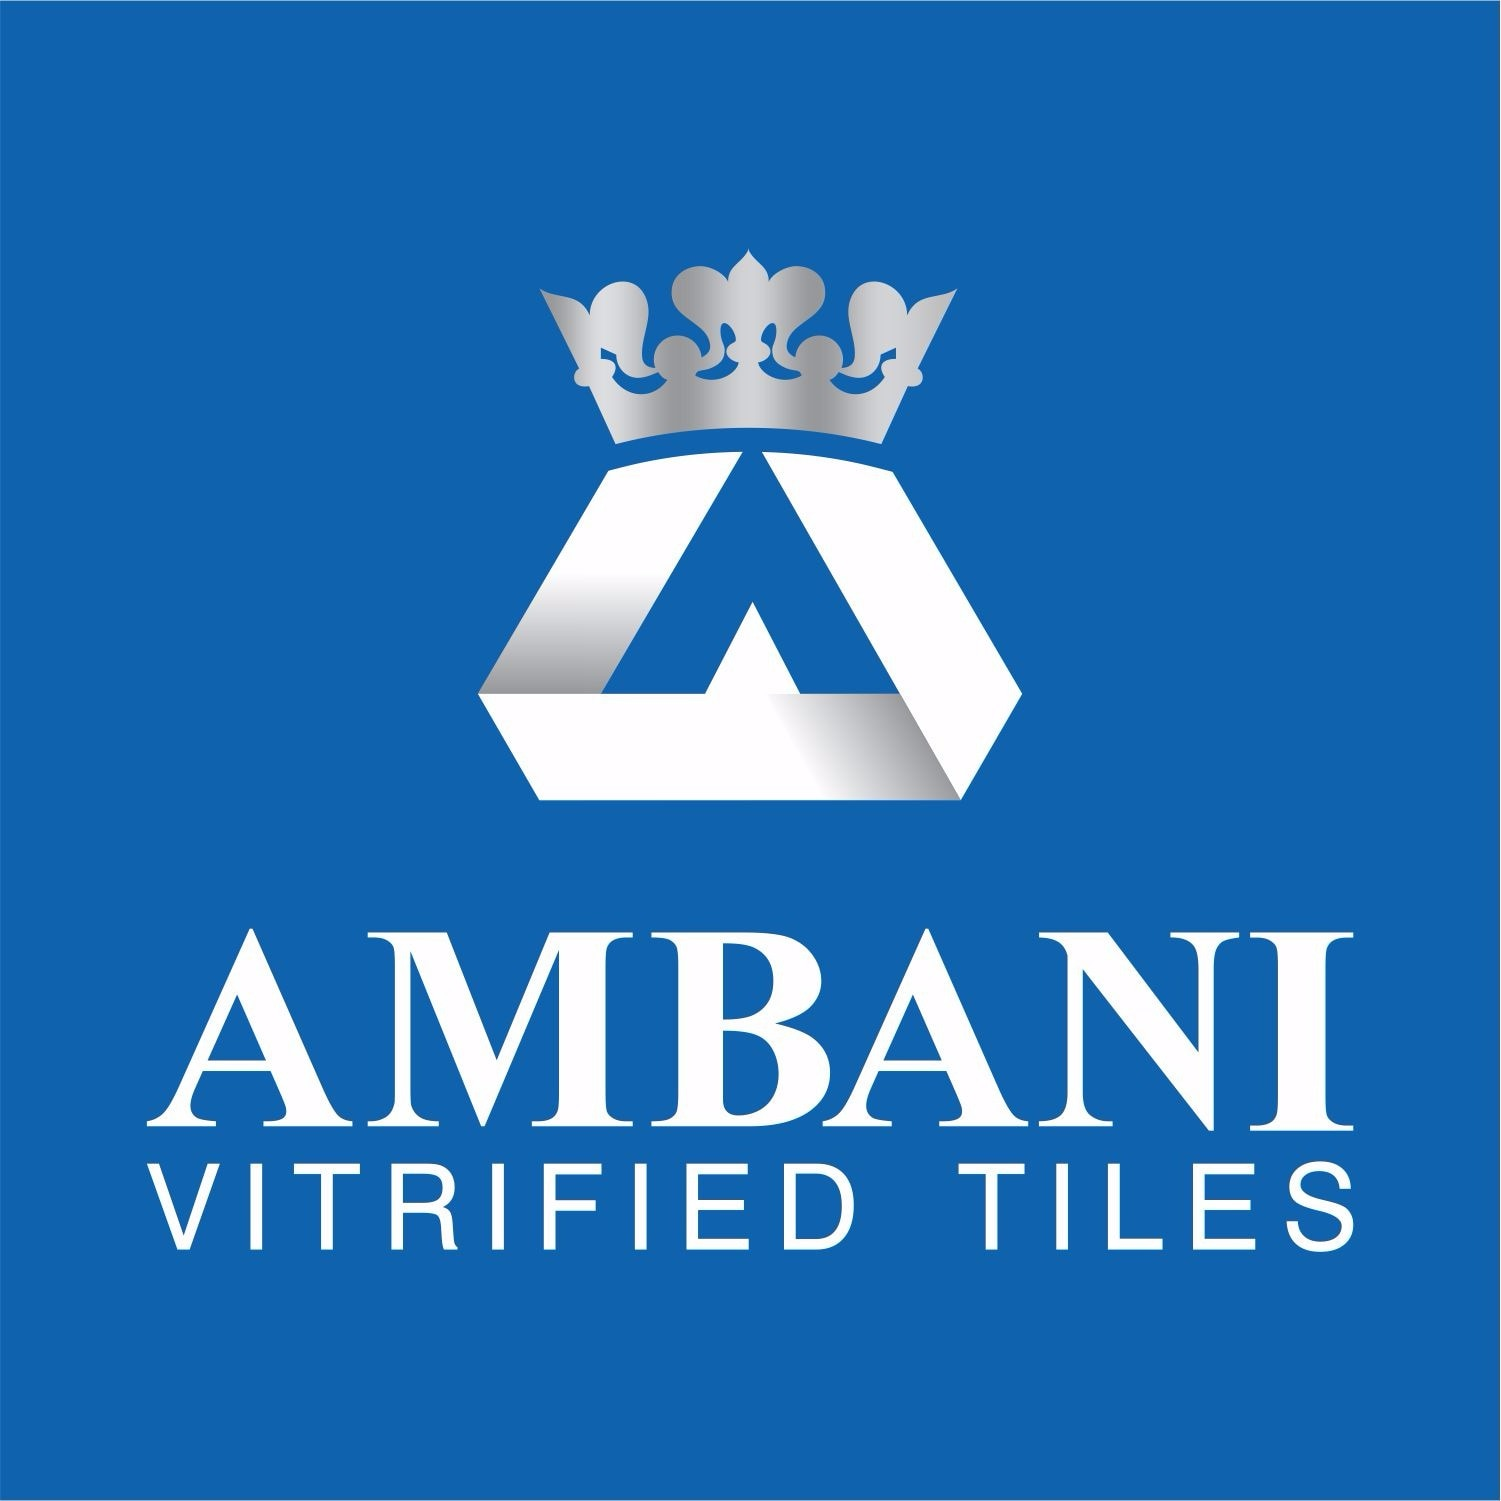 Ambani vitrified private limited largest ceramic floor wall tiles ambani vitrified private limited largest ceramic floor wall tiles manufacturer in india welcomes all to vibrant ceramics expo summit dailygadgetfo Choice Image